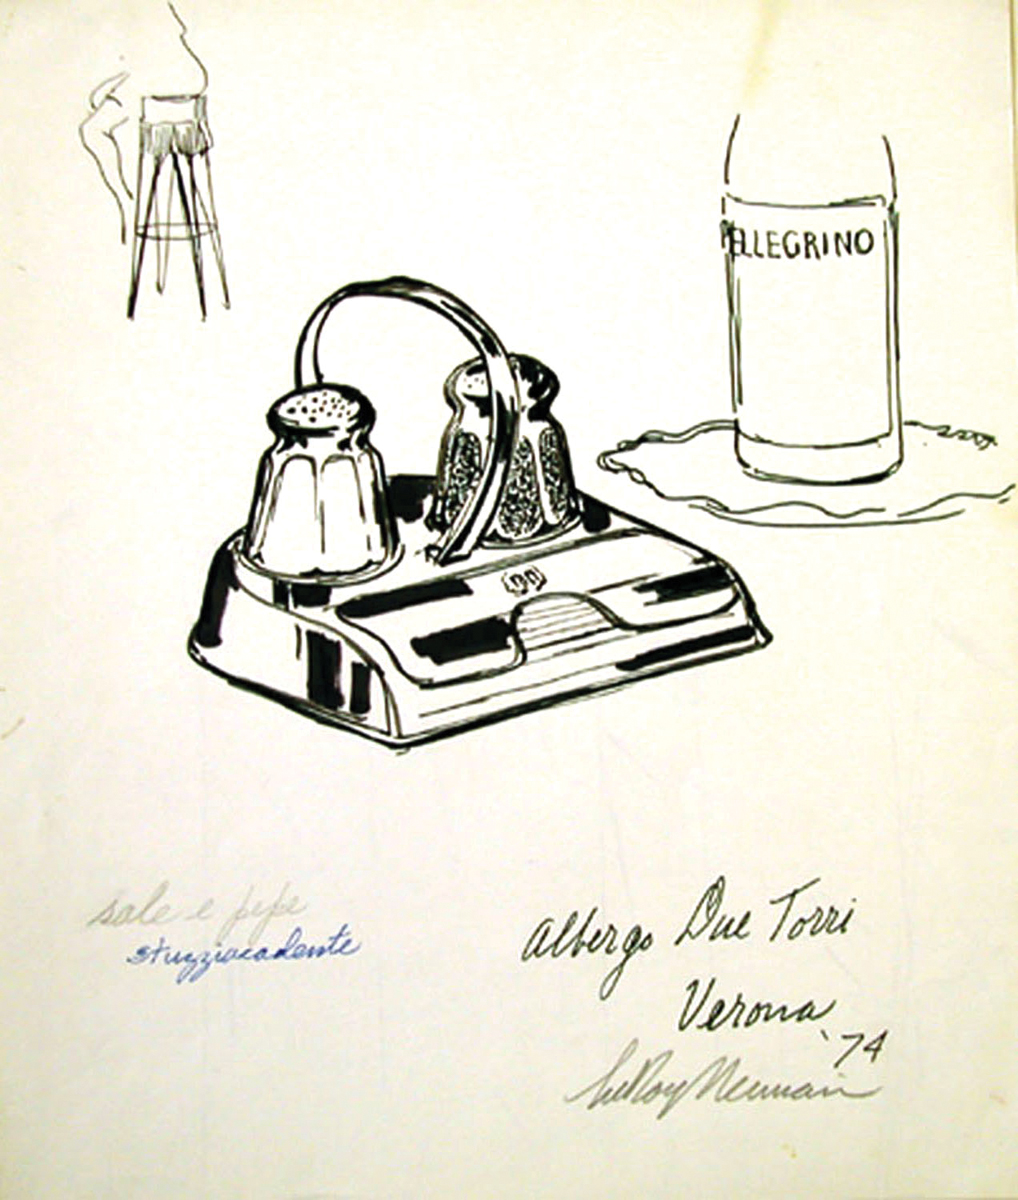 Salt and Pepper, Mixed Media on Paper, 14 X 12 in, 1974